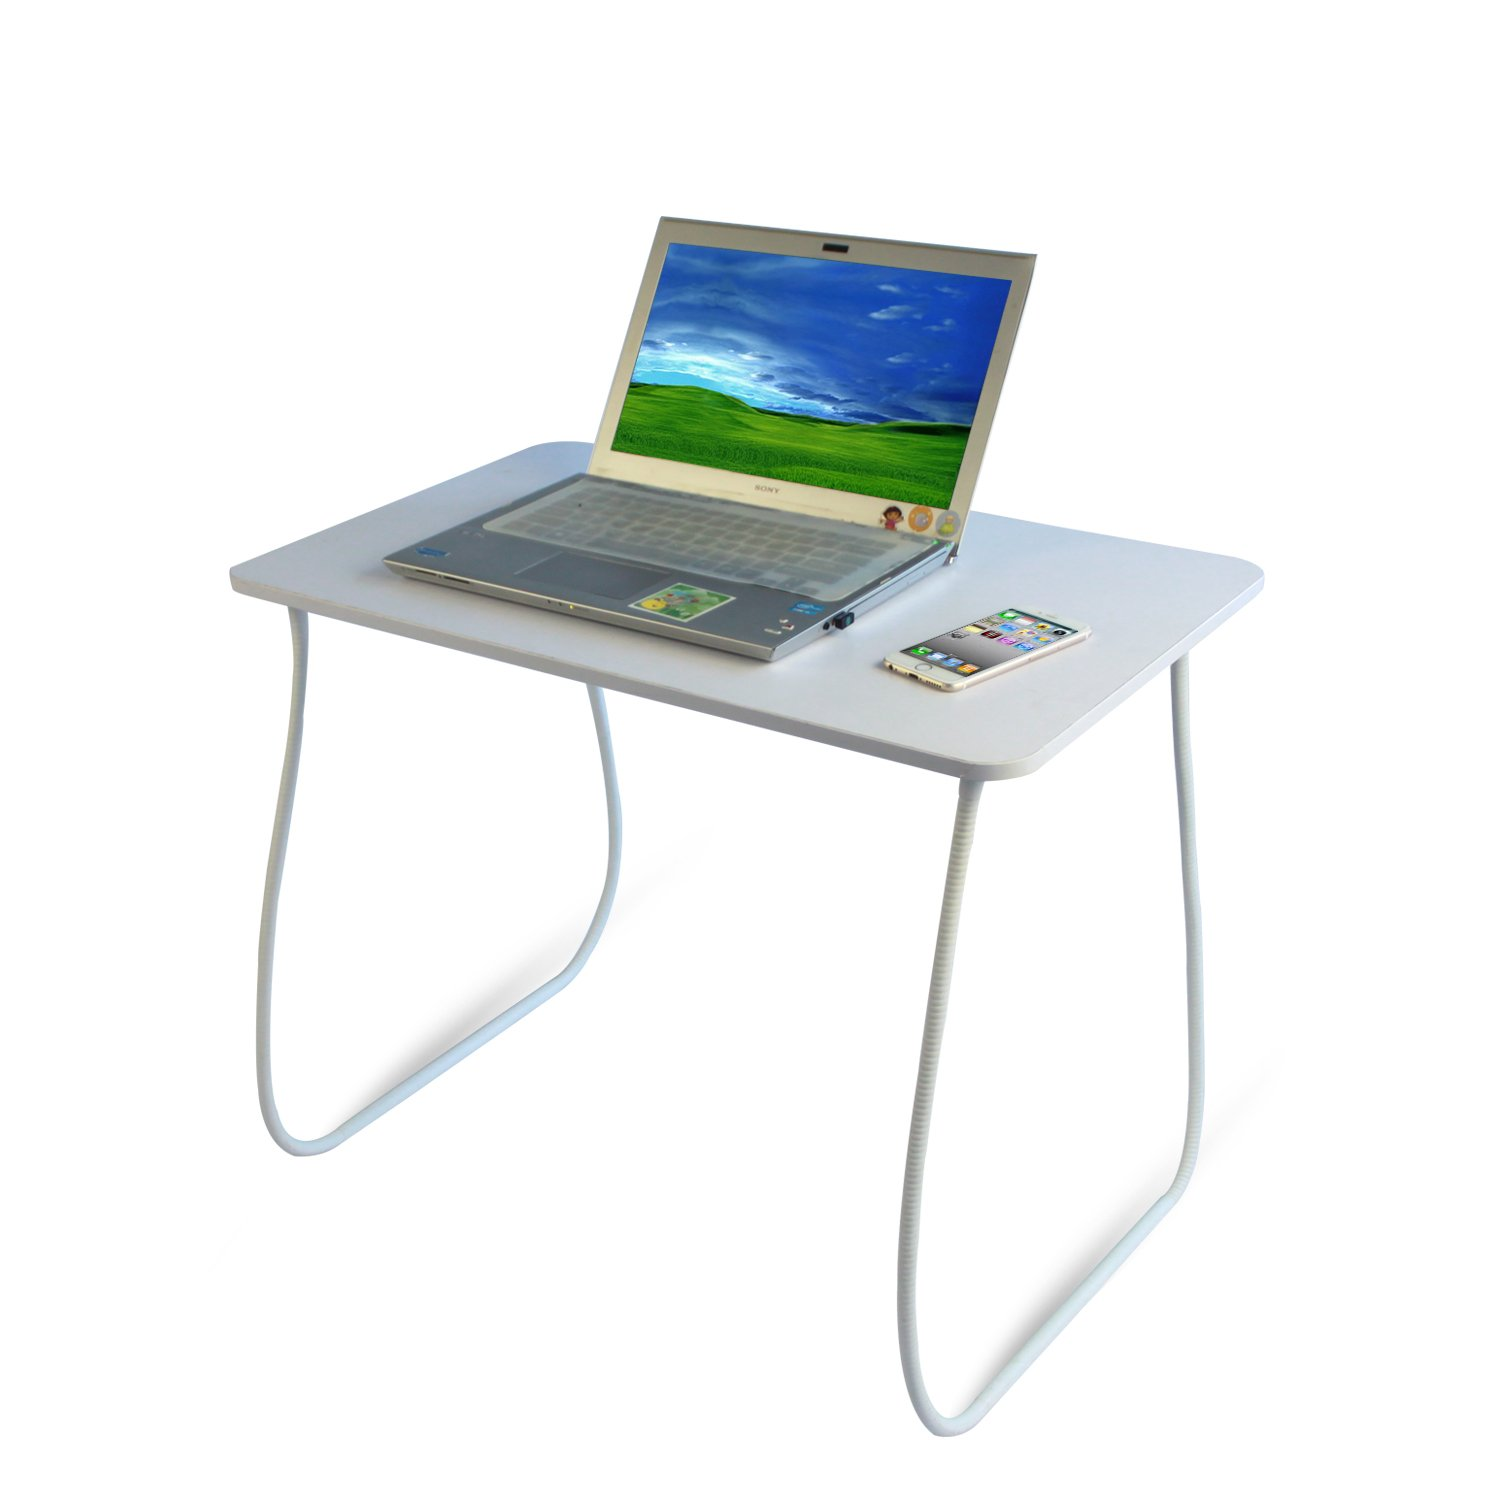 RXMOO Adjustable Standing Table Sitting Stand Desk Mulifunction Removable Computer Laptop Working Table (White)